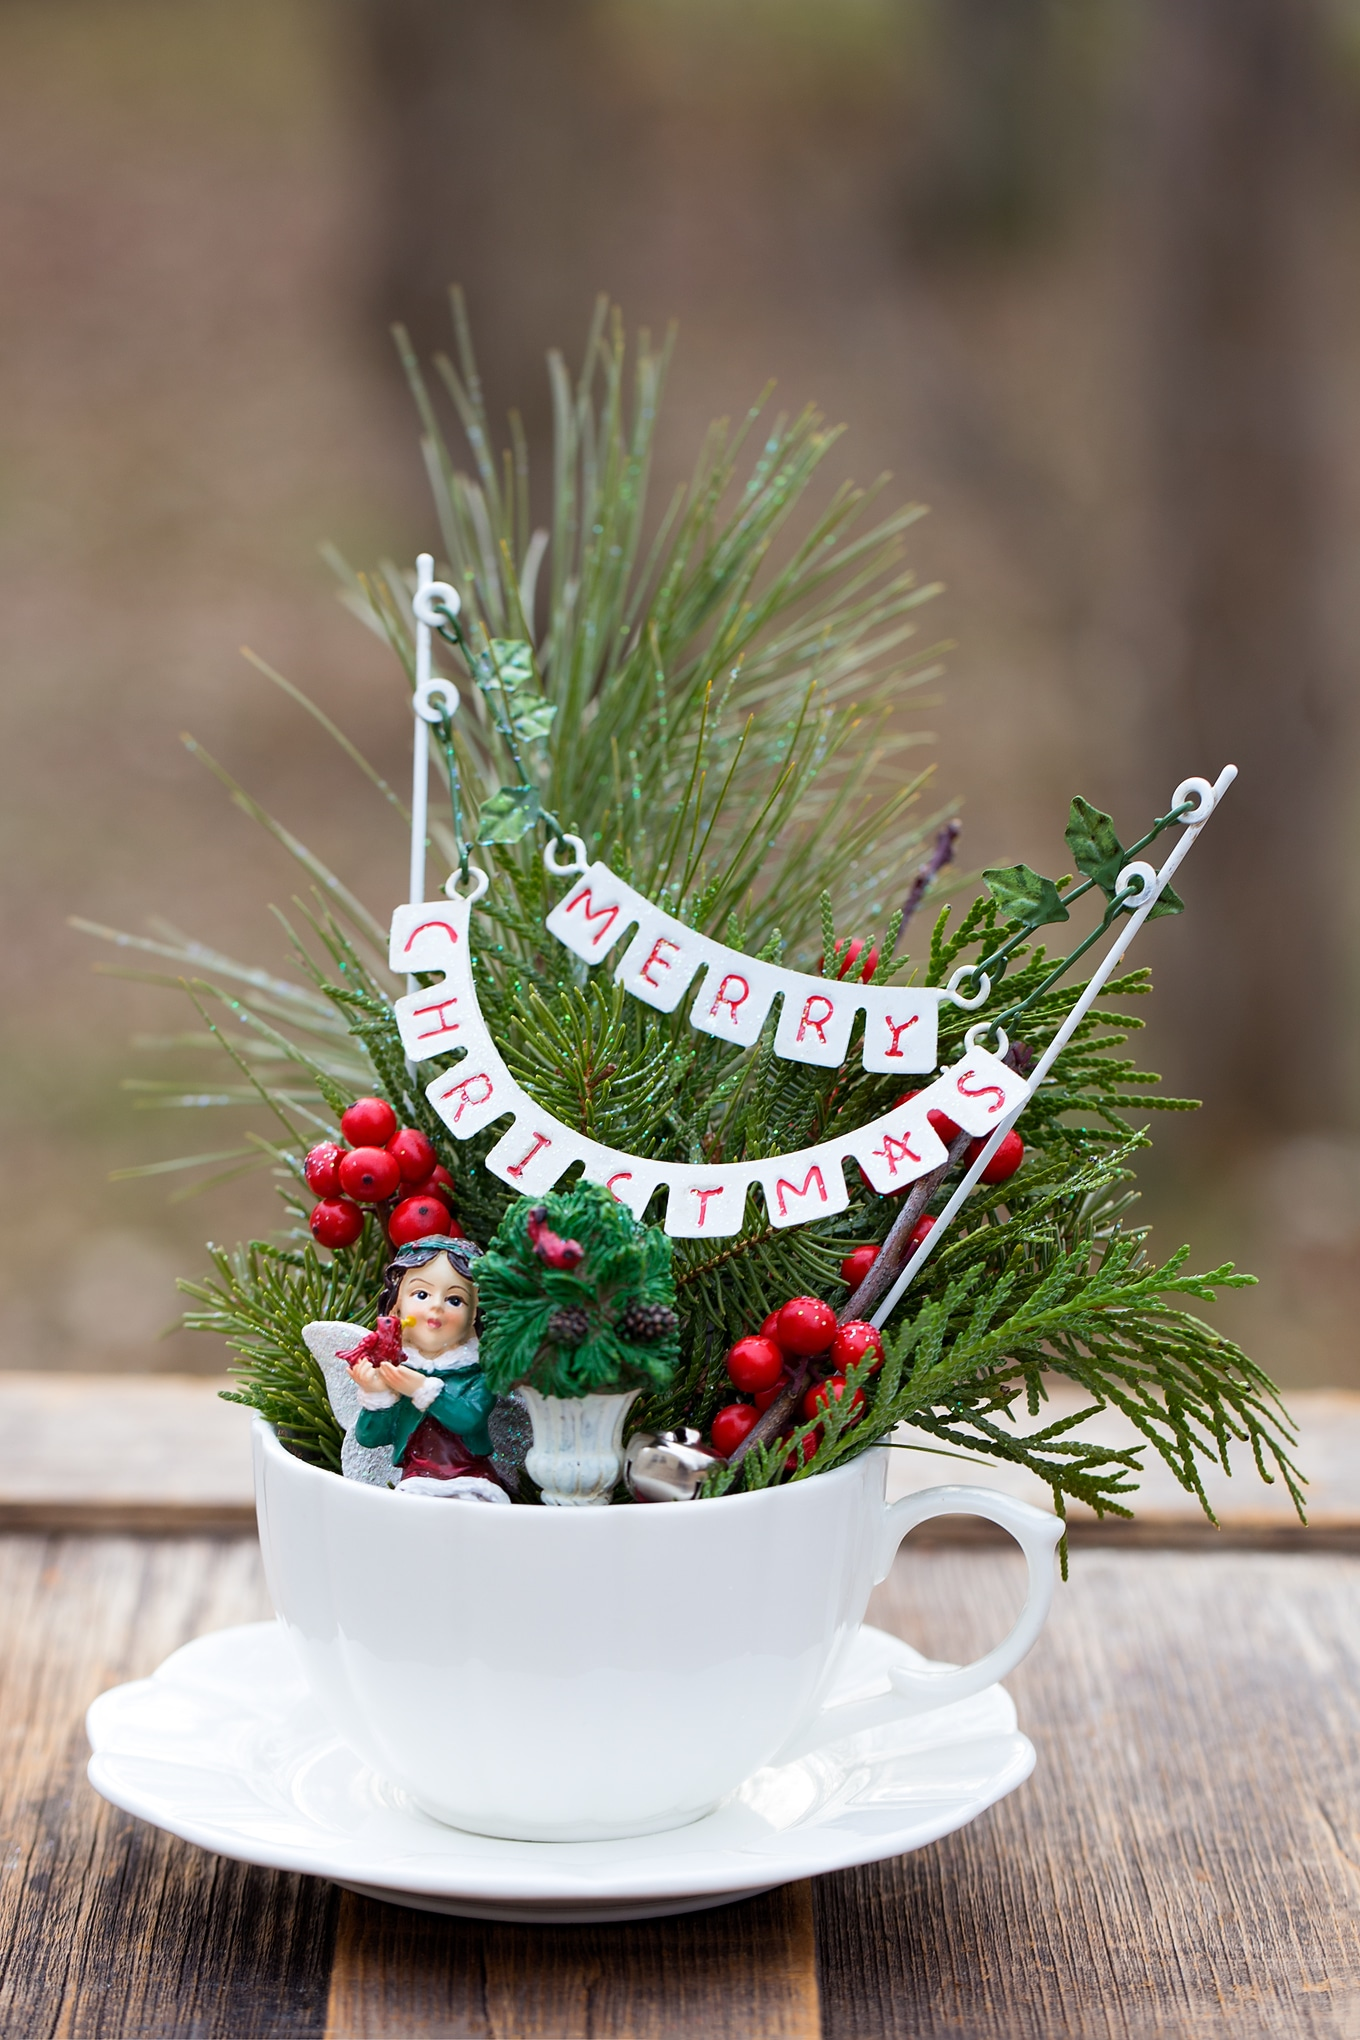 How to Make a Festive Christmas Teacup Garden